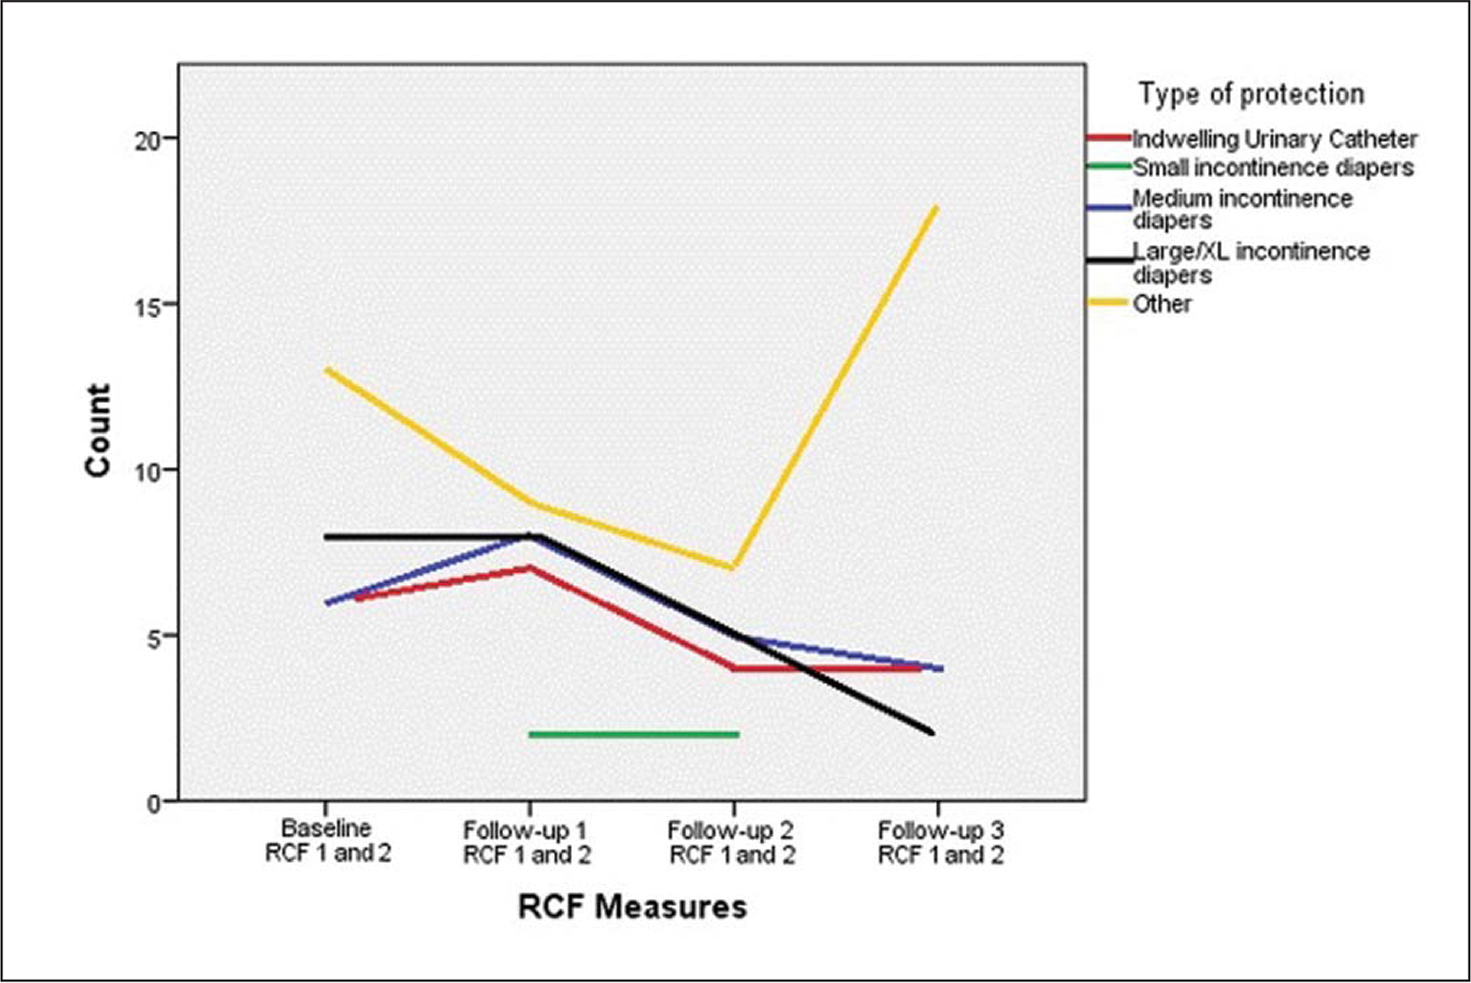 Cross tabulation between type of urinary incontinence products, as well as other strategies during the study timeframe, in the implementation residential care facility (RCFs).